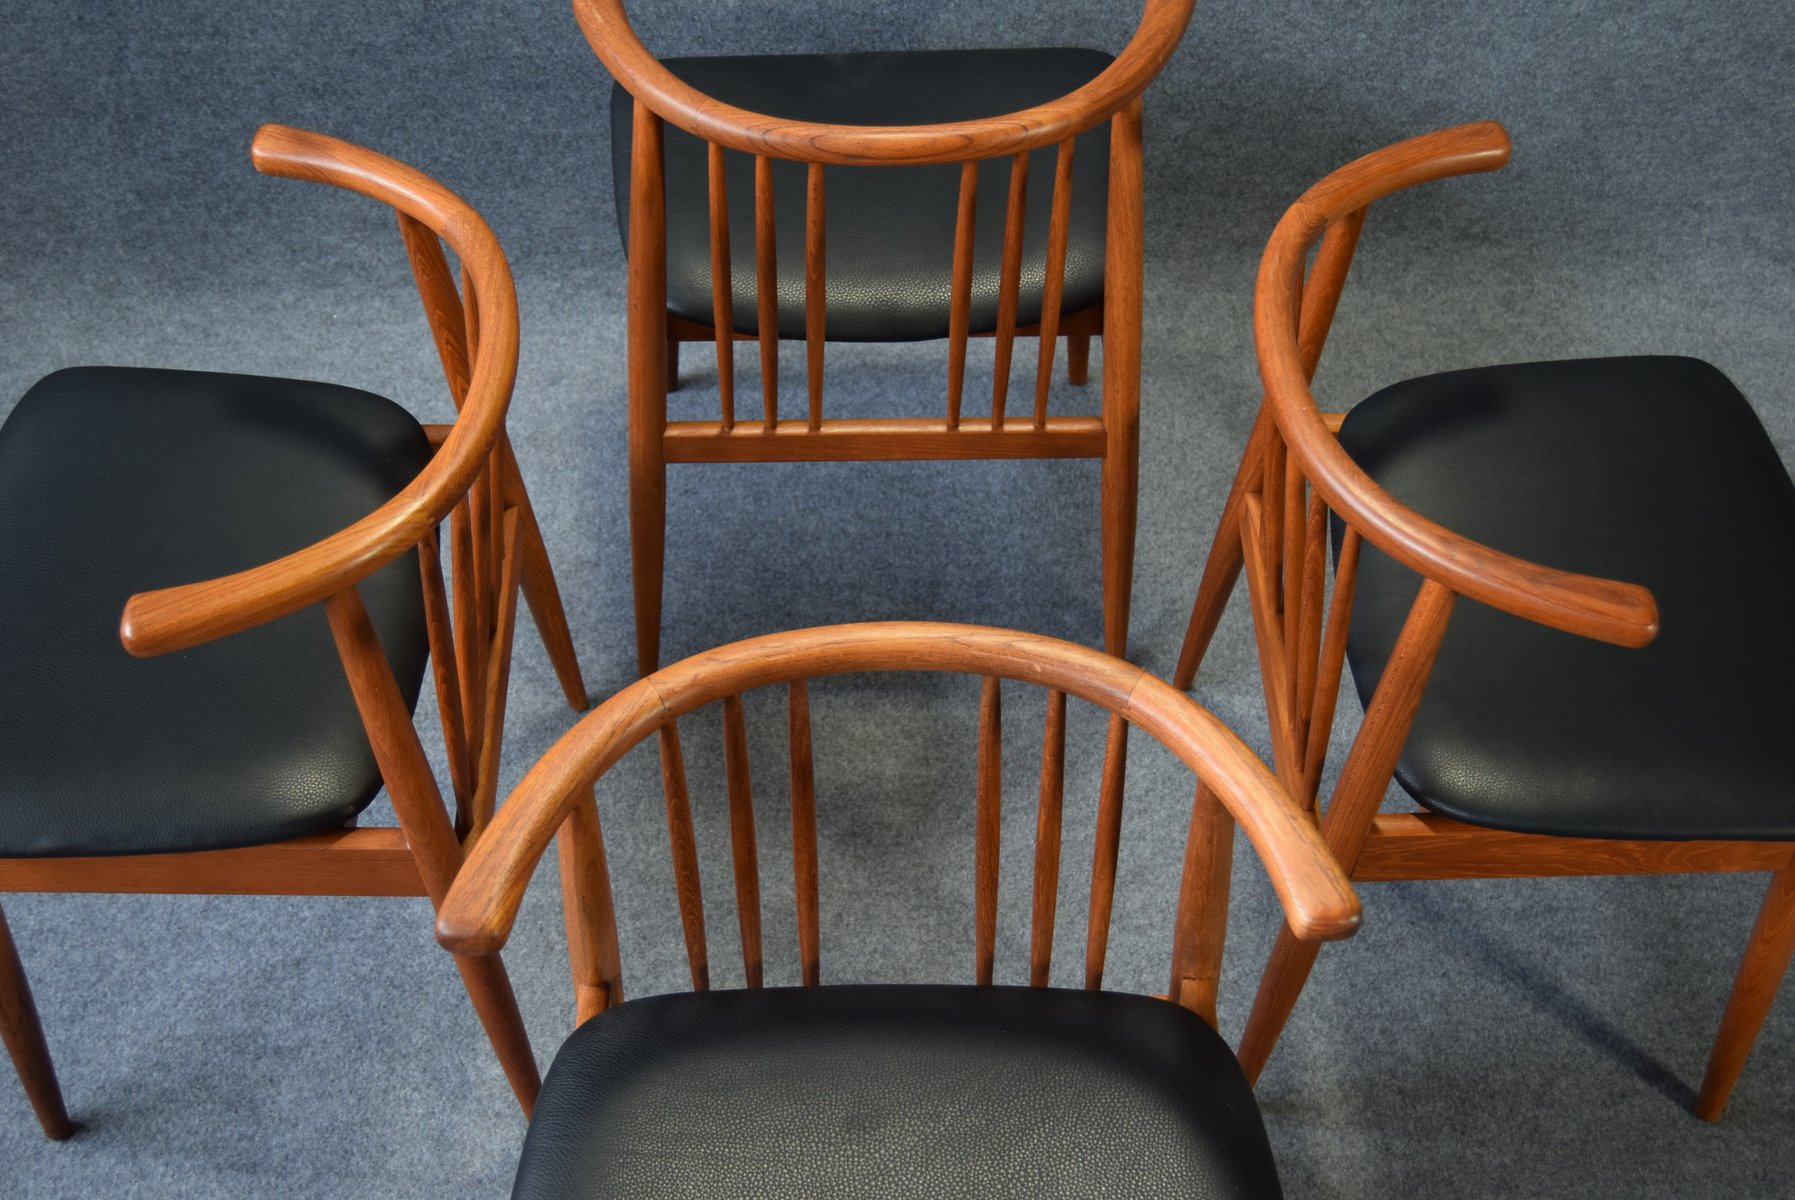 Teak dining chairs from hp hansen randers set of 4 for sale at teak dining chairs from hp hansen randers set of 4 sciox Choice Image